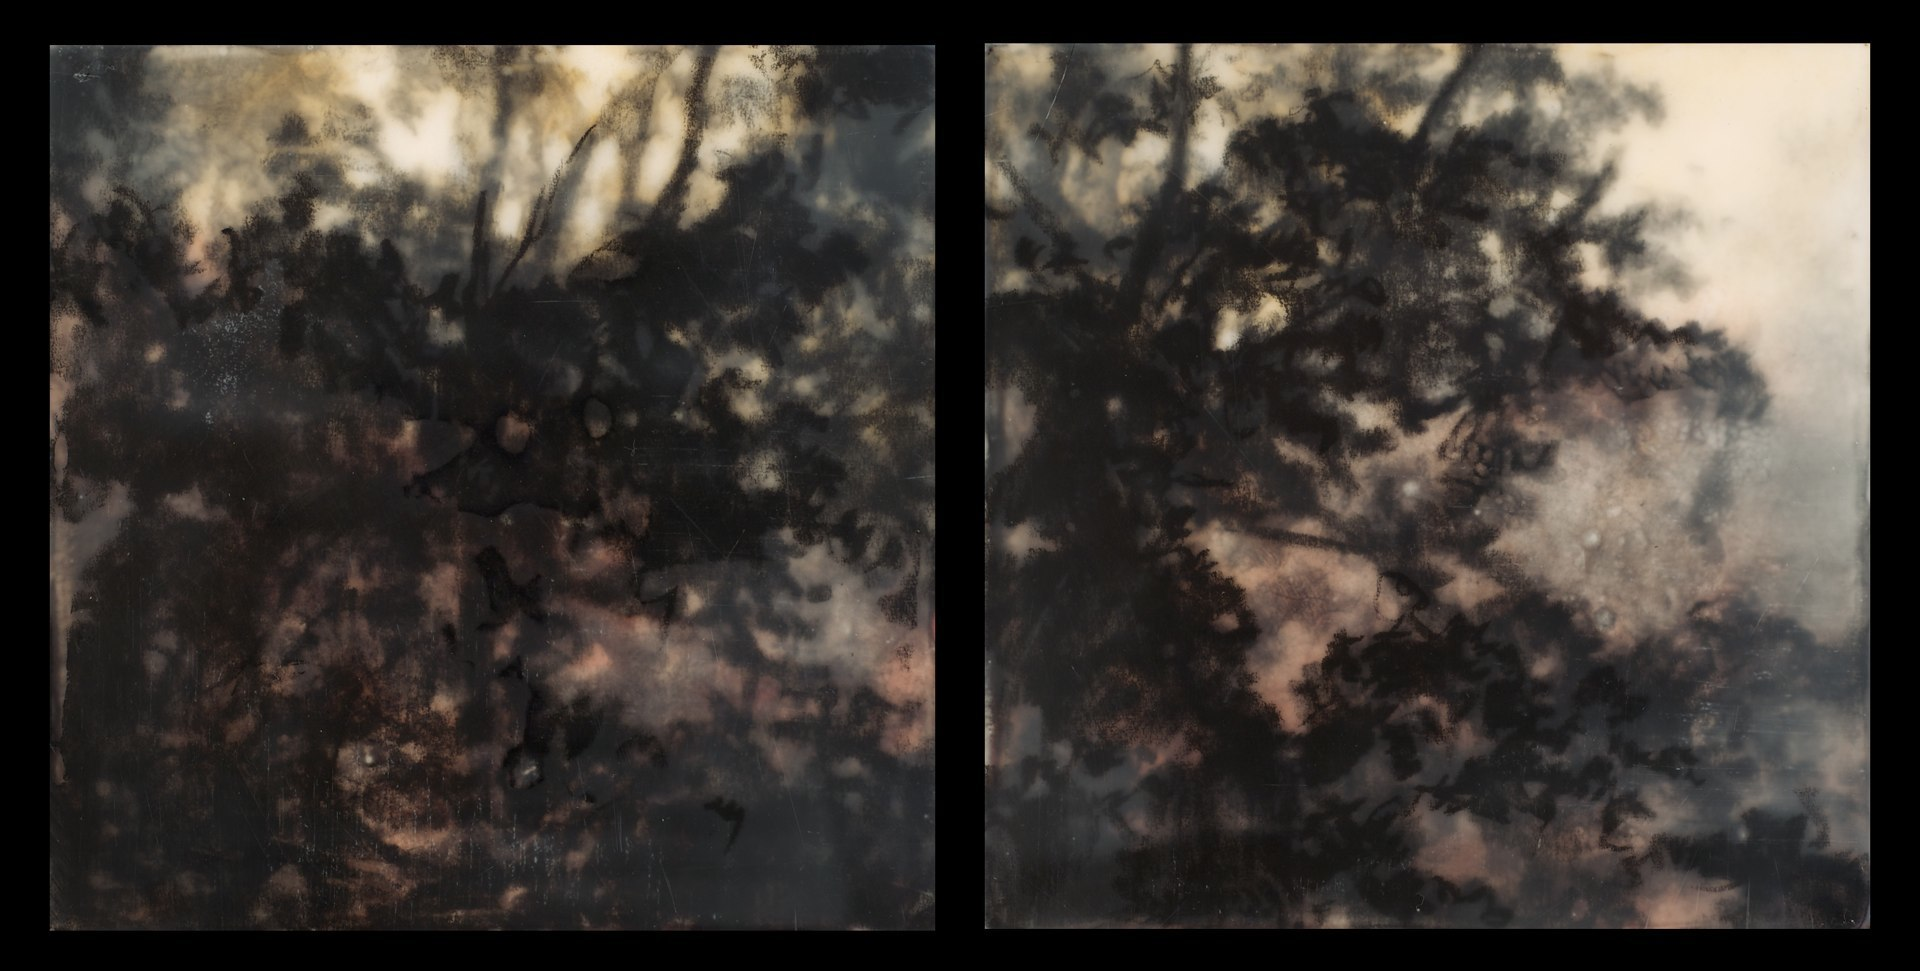 Ether Study , 2013. Encaustic, pigment, and charcoal on panel.5 x 10 inches (diptych). Private collection.